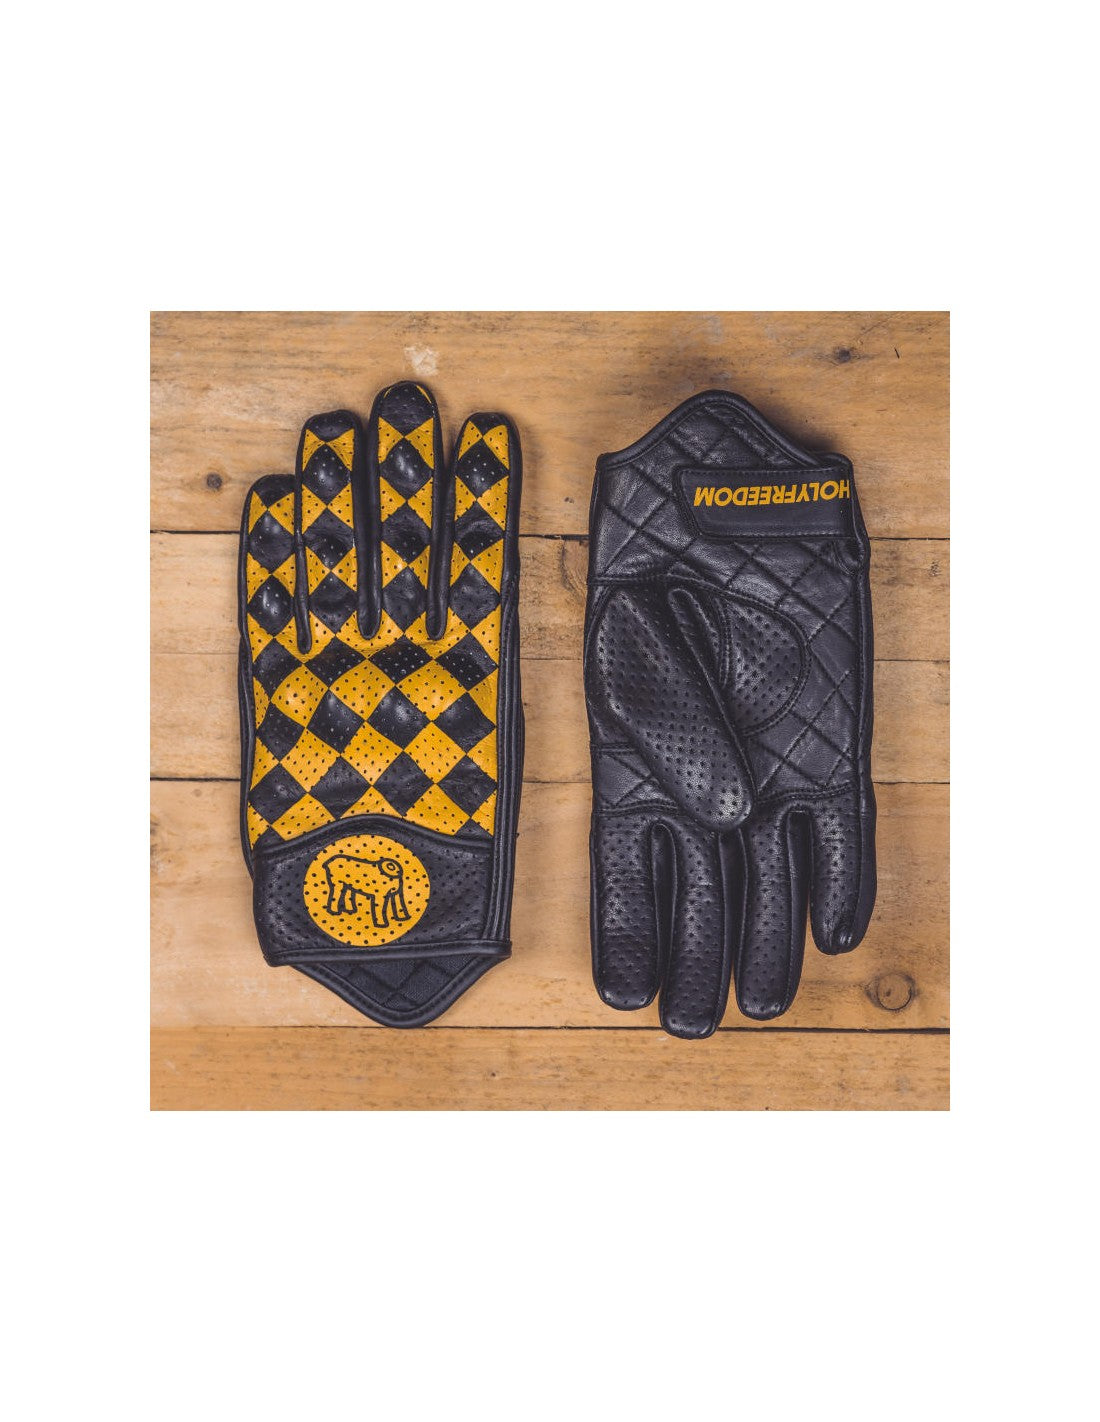 Rogue motorcycles, Yellow and black, bullit gloves, leather gloves, retro vintage gloves, motorcycle gear, perth wa australia, australia motorbike retailer, motorcycle apparel.